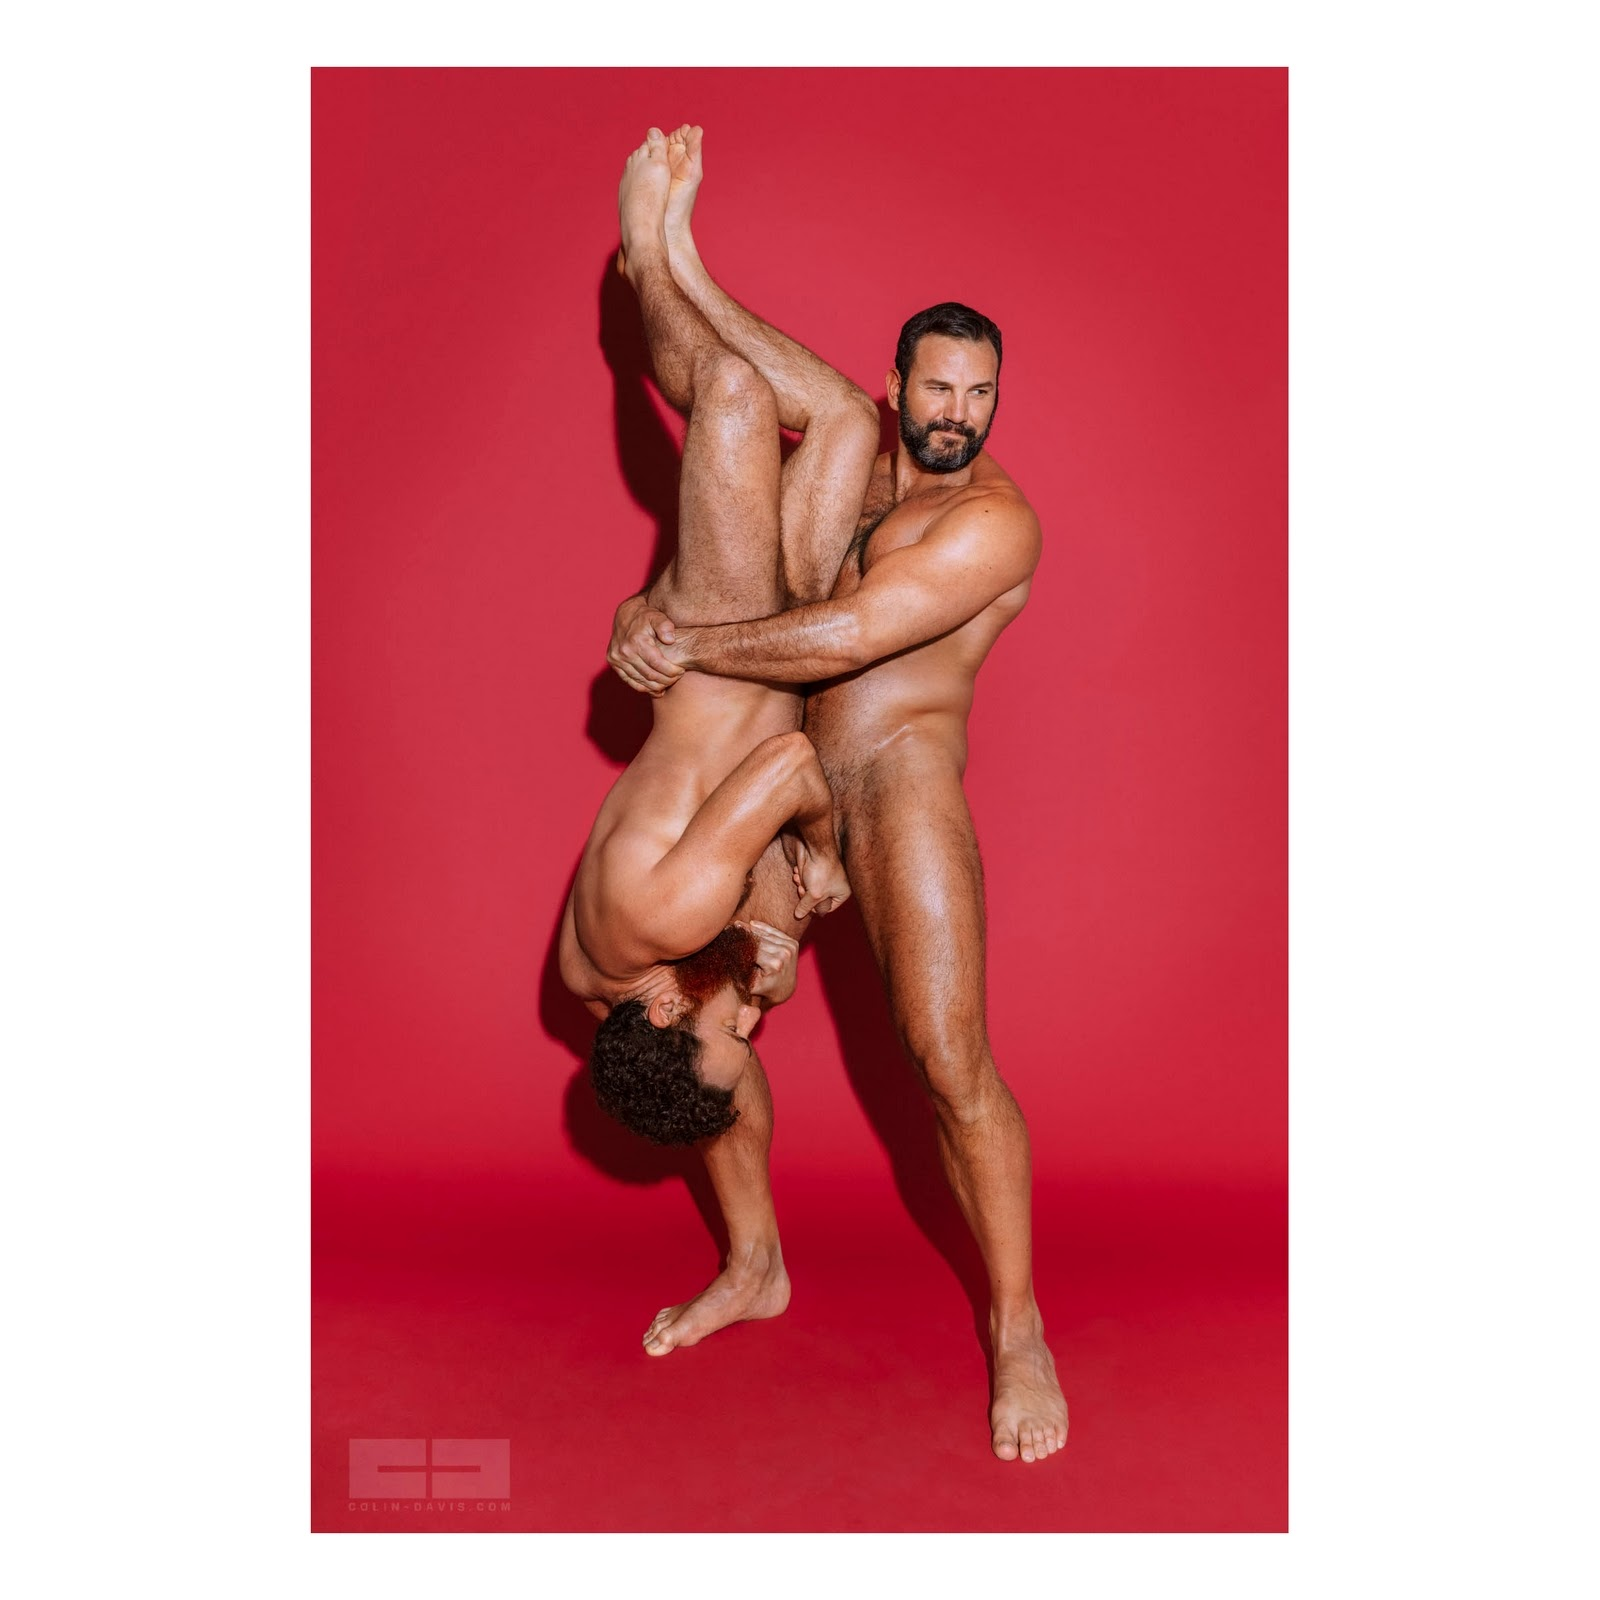 HerculeS & DiomedeS, by Colin Davis Studio ft Gooshie87 and Rocco Hard (NSFW).